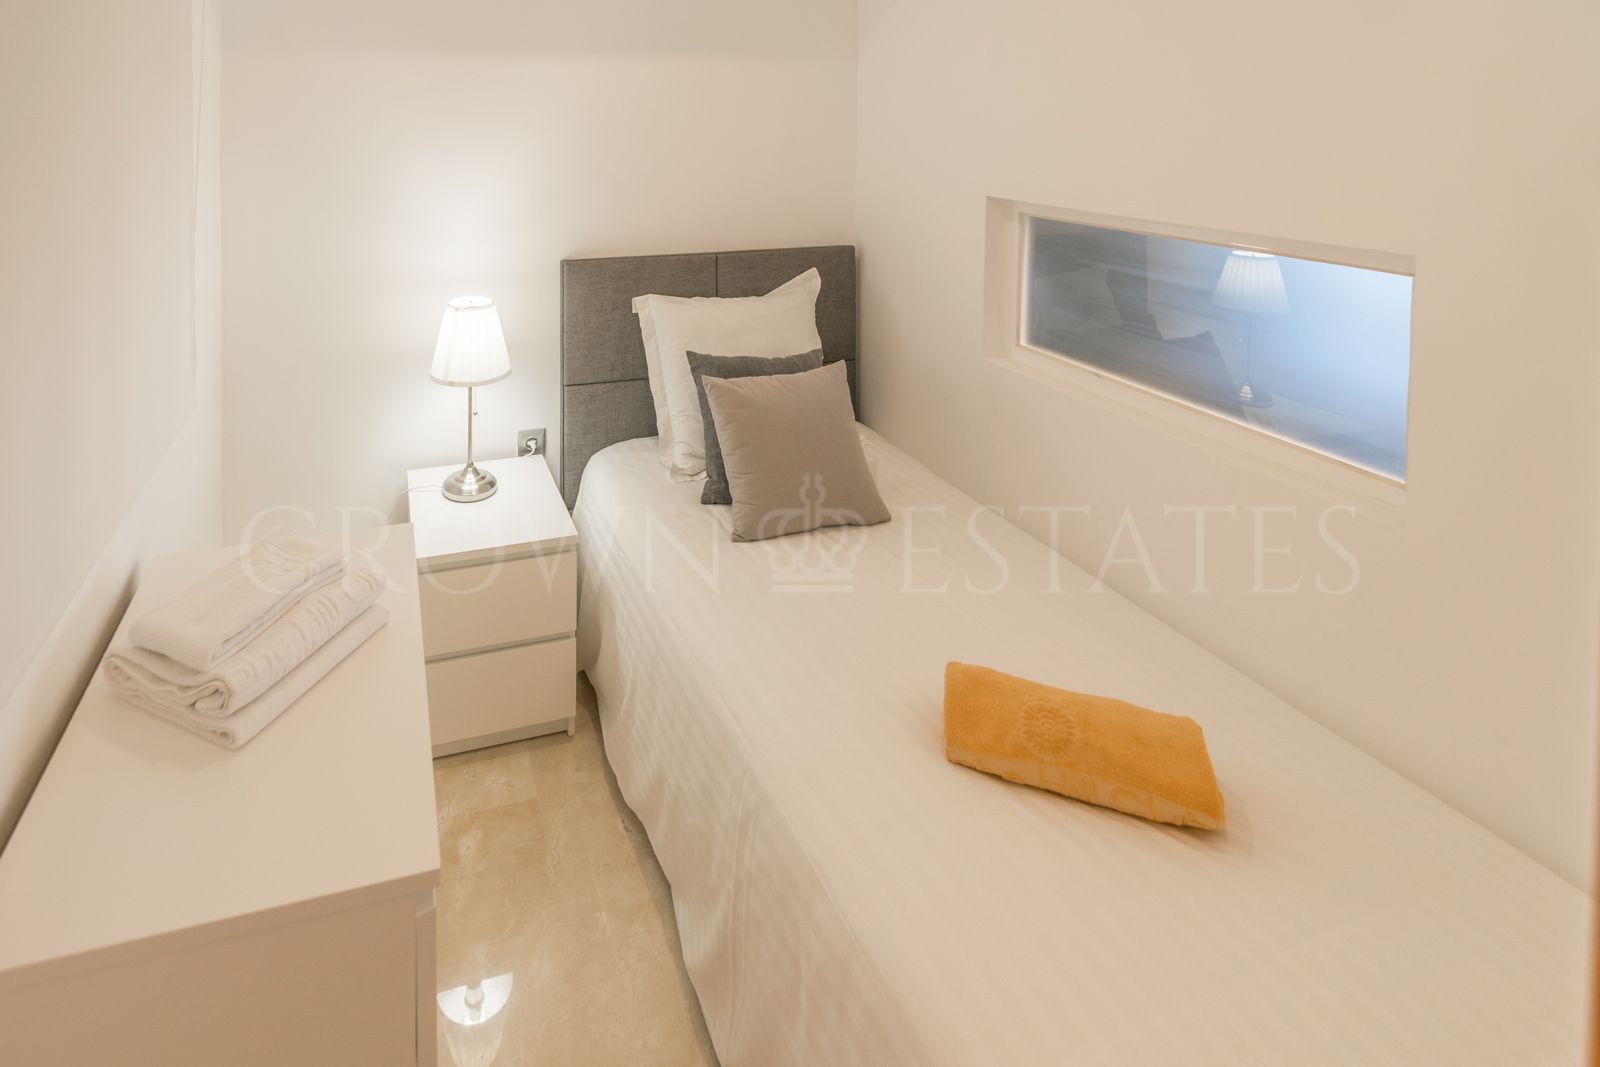 GREAT OPPORTUNITY 3 BEDROOM APARTMENT WITH LARGE TERRACE AND BEAUTIFUL SEA VIEWS IN NUEVA ANDALUCIA!!